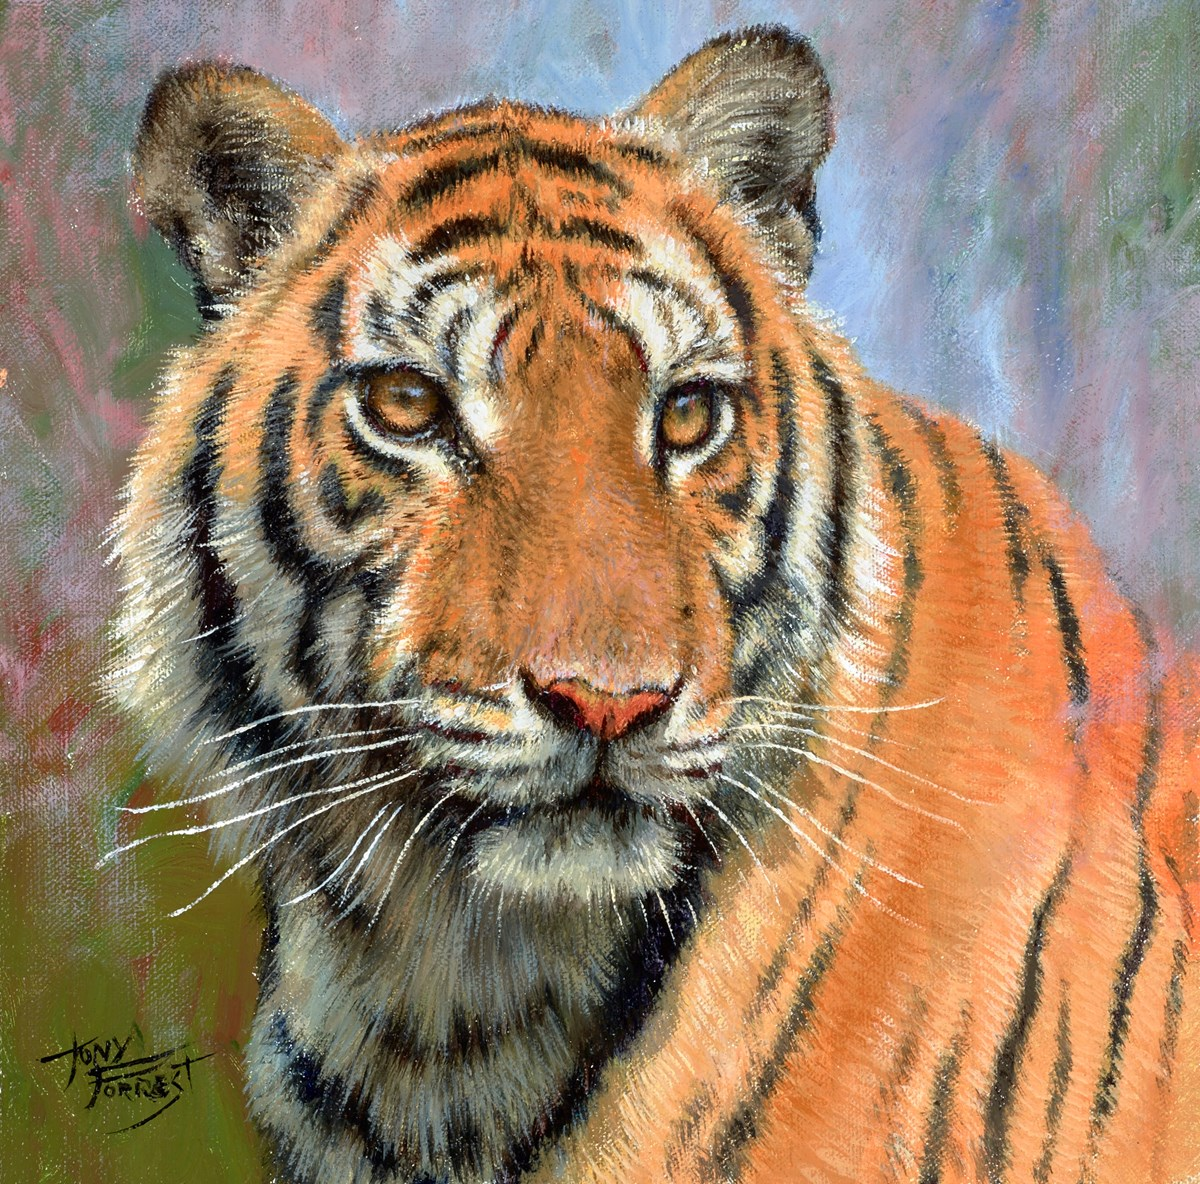 Tiger Portrait I by tony forrest -  sized 10x10 inches. Available from Whitewall Galleries